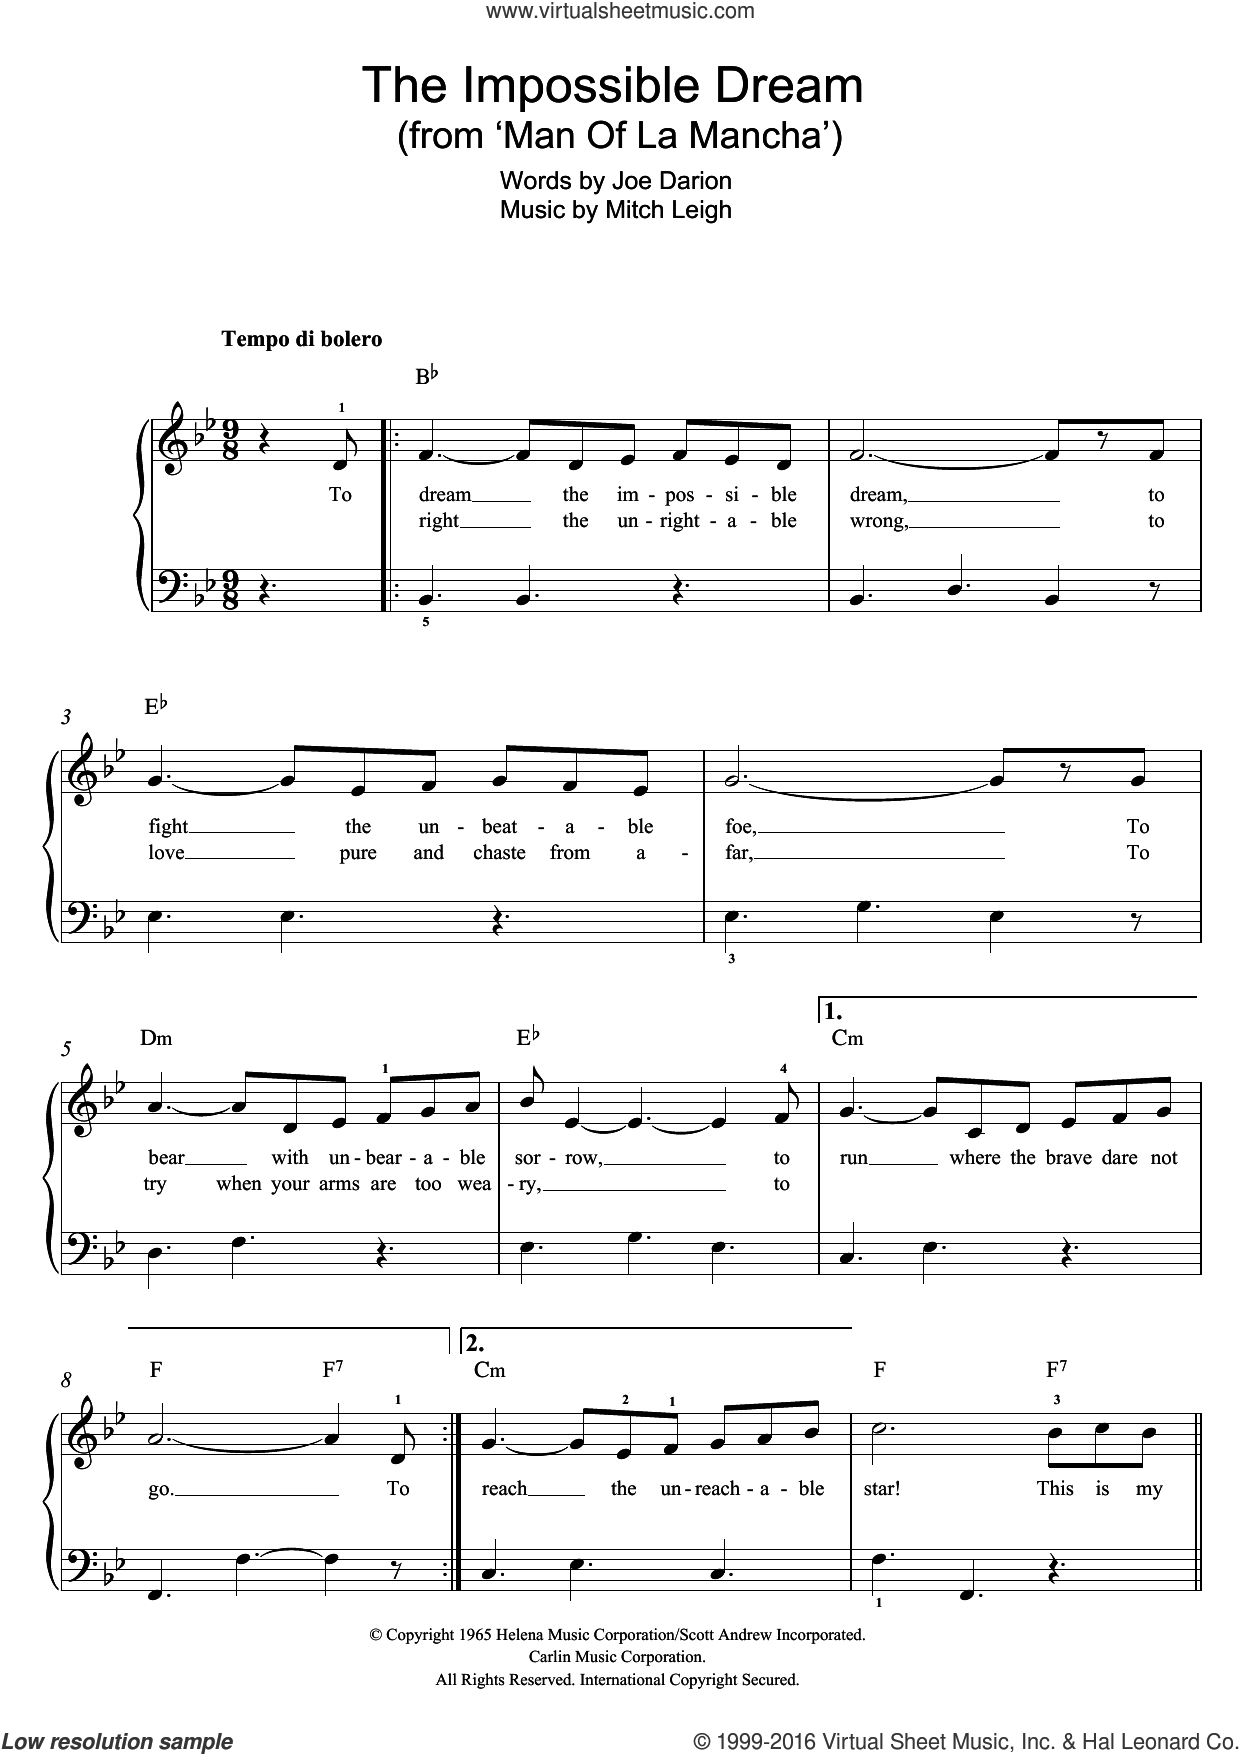 The Impossible Dream (from Man Of La Mancha) sheet music for piano solo by Andy Williams, Mitch Leigh and Joe Darion, easy skill level